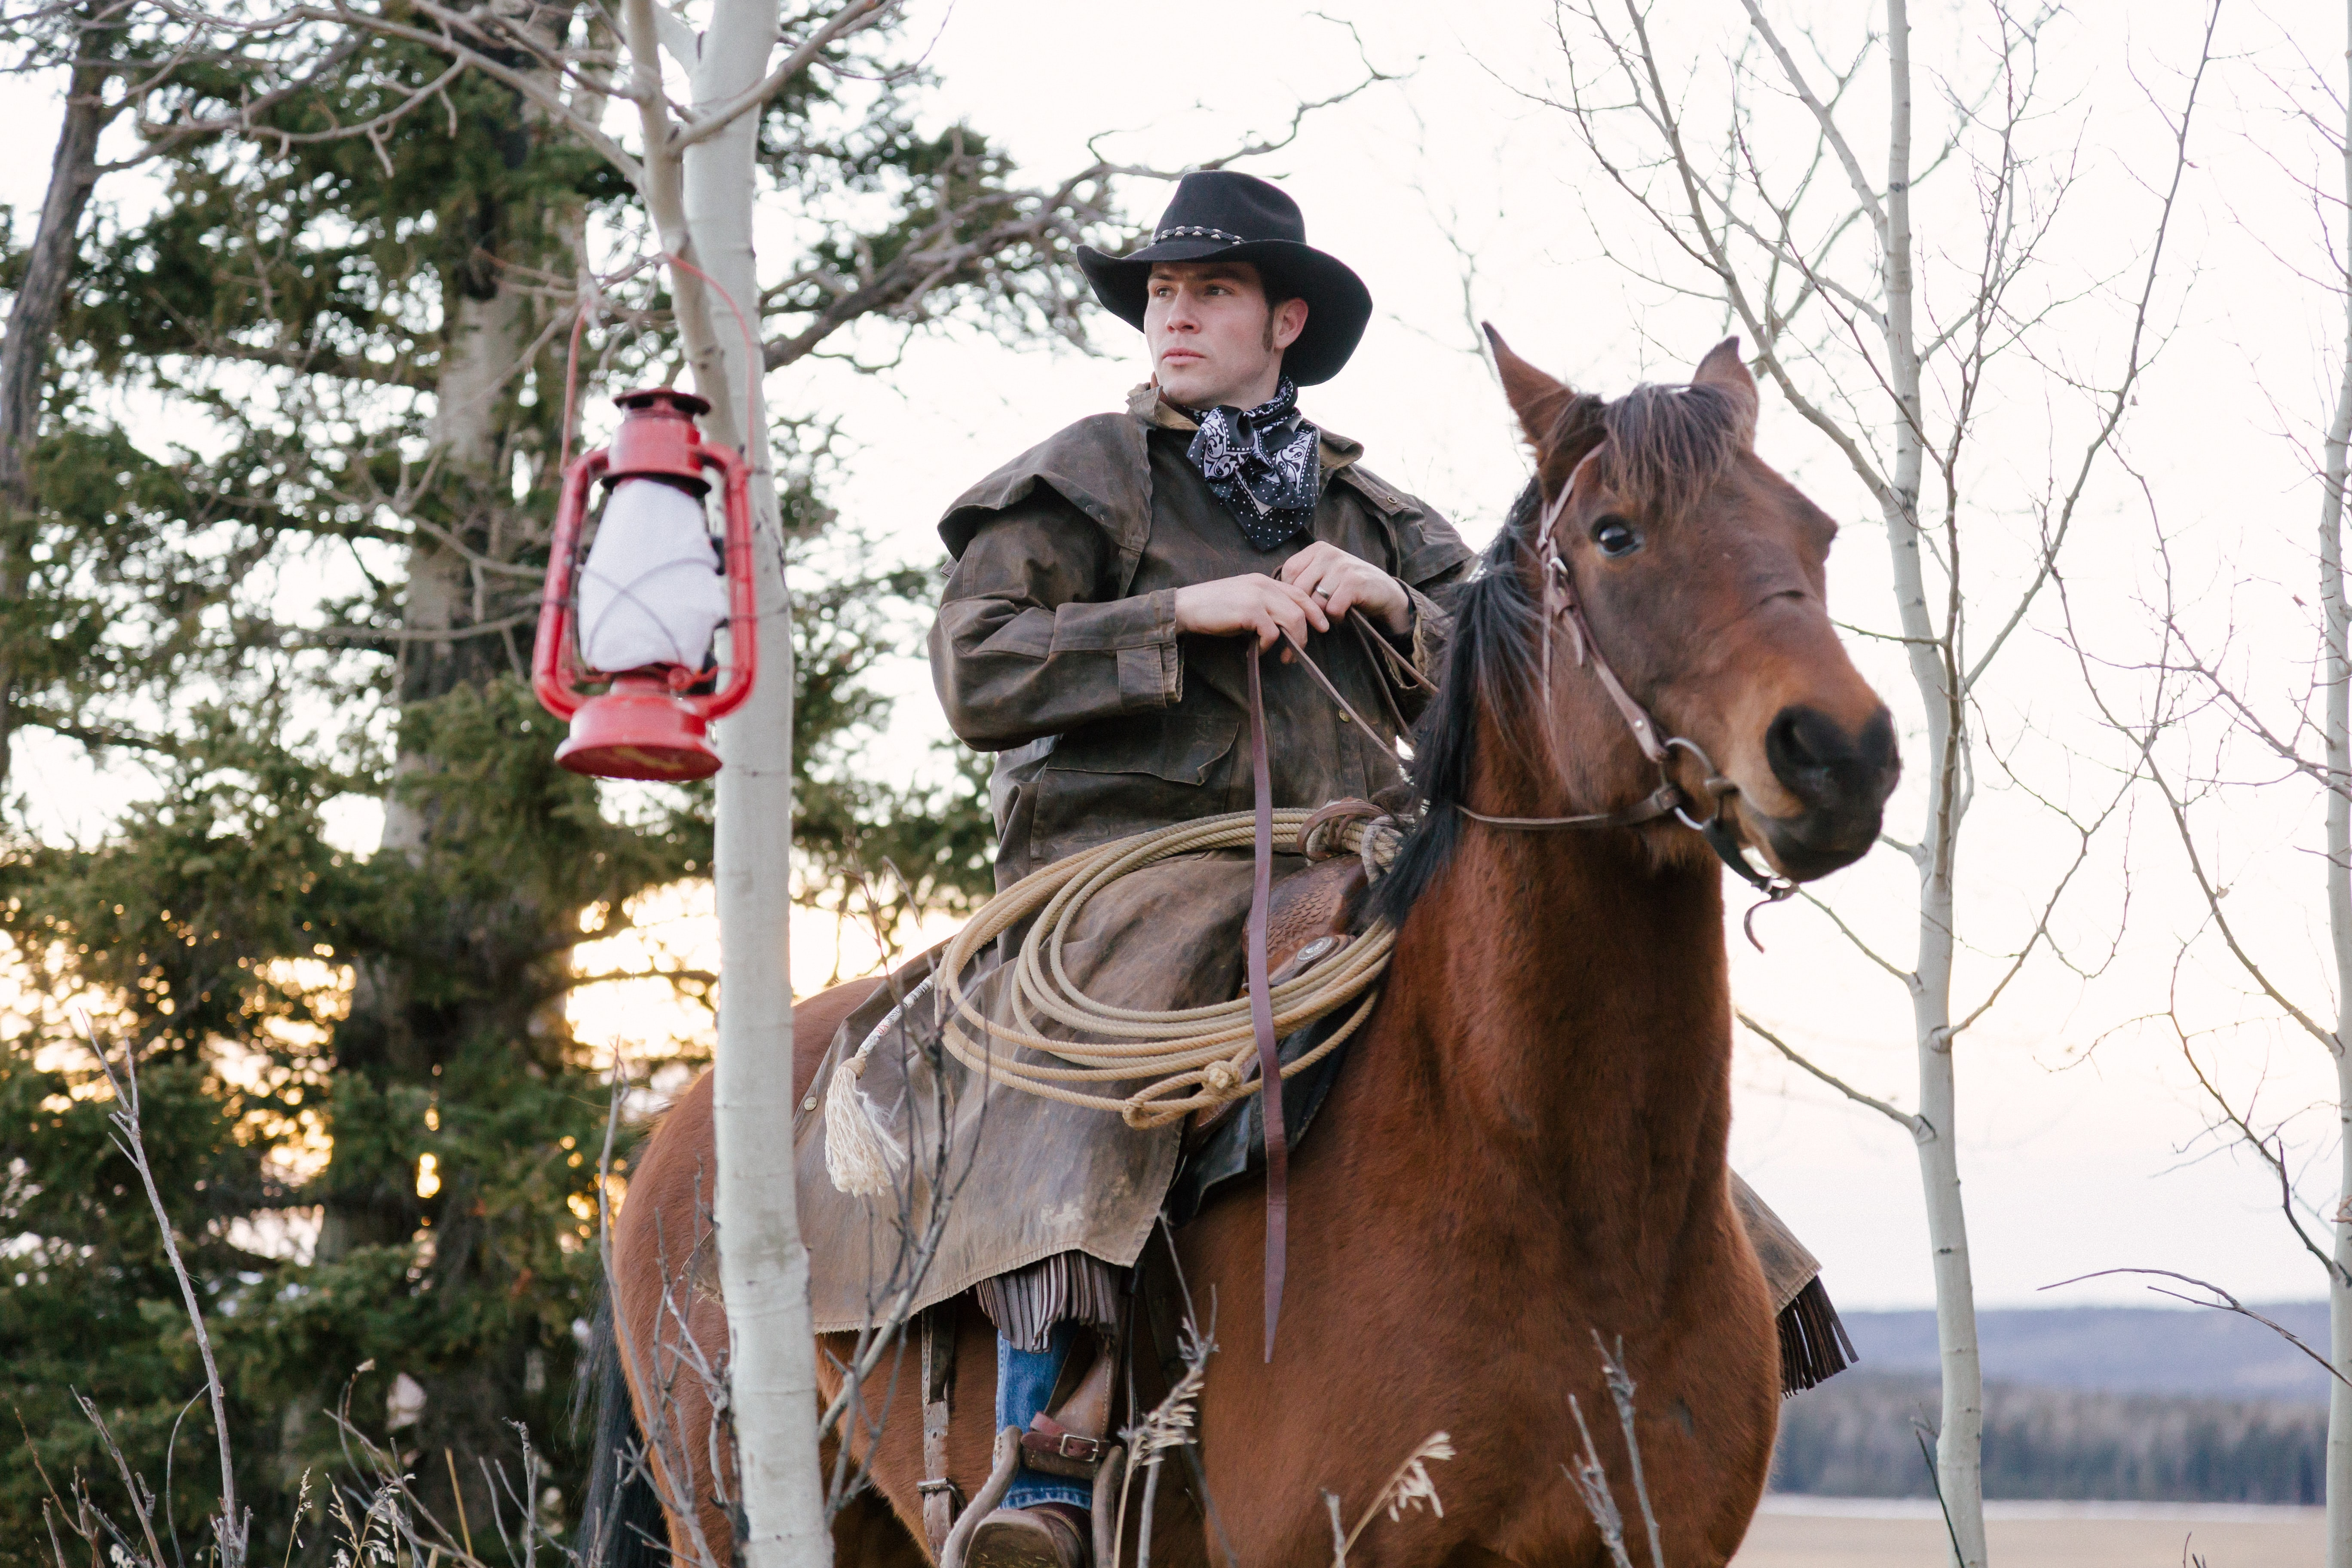 A man in a cowboy hat and a leather coat riding between trees on a chestnut horse